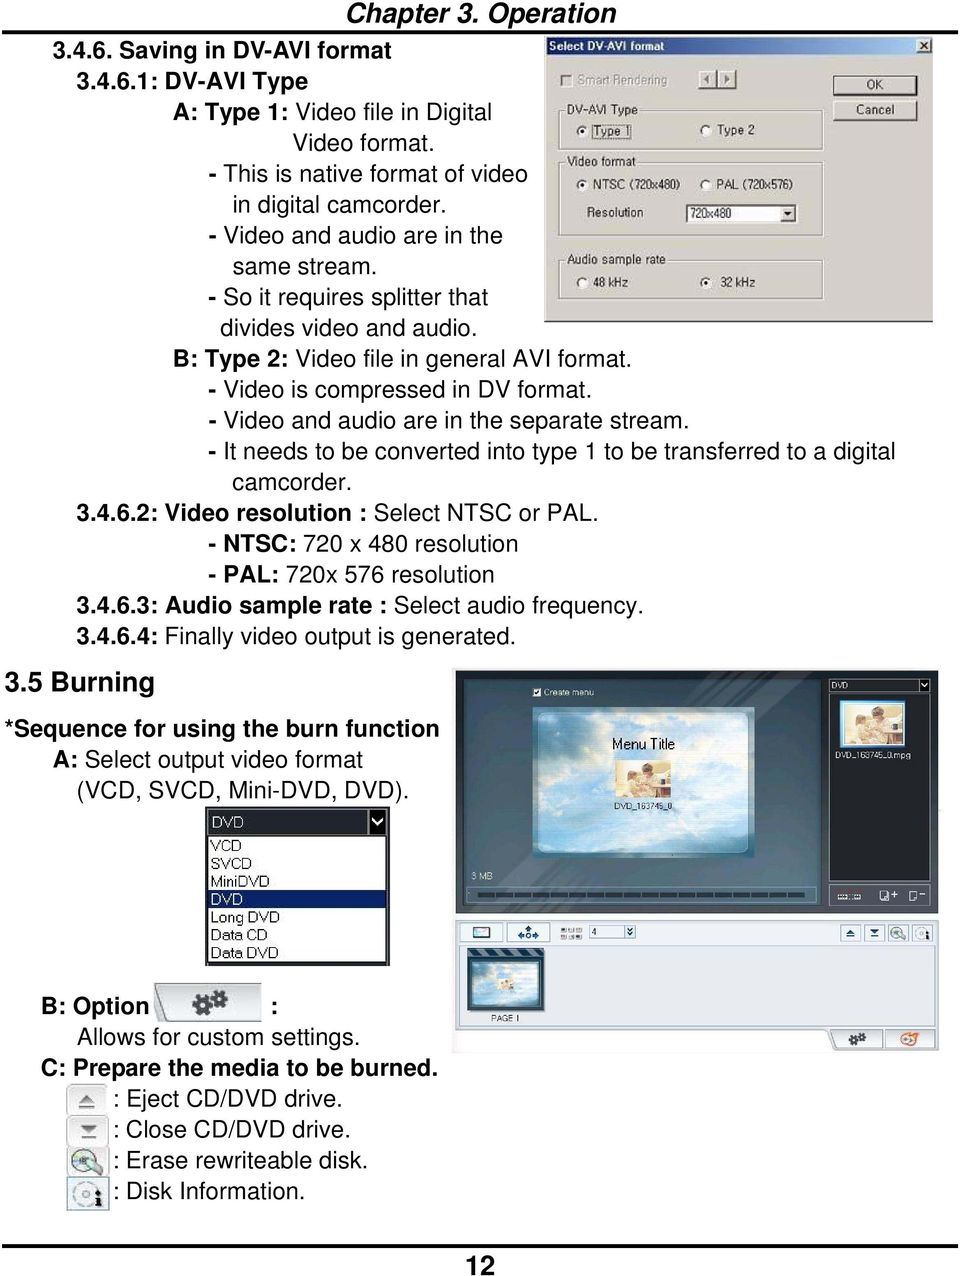 - Video and audio are in the separate stream. - It needs to be converted into type 1 to be transferred to a digital camcorder. 3.4.6.2: Video resolution : Select NTSC or PAL.